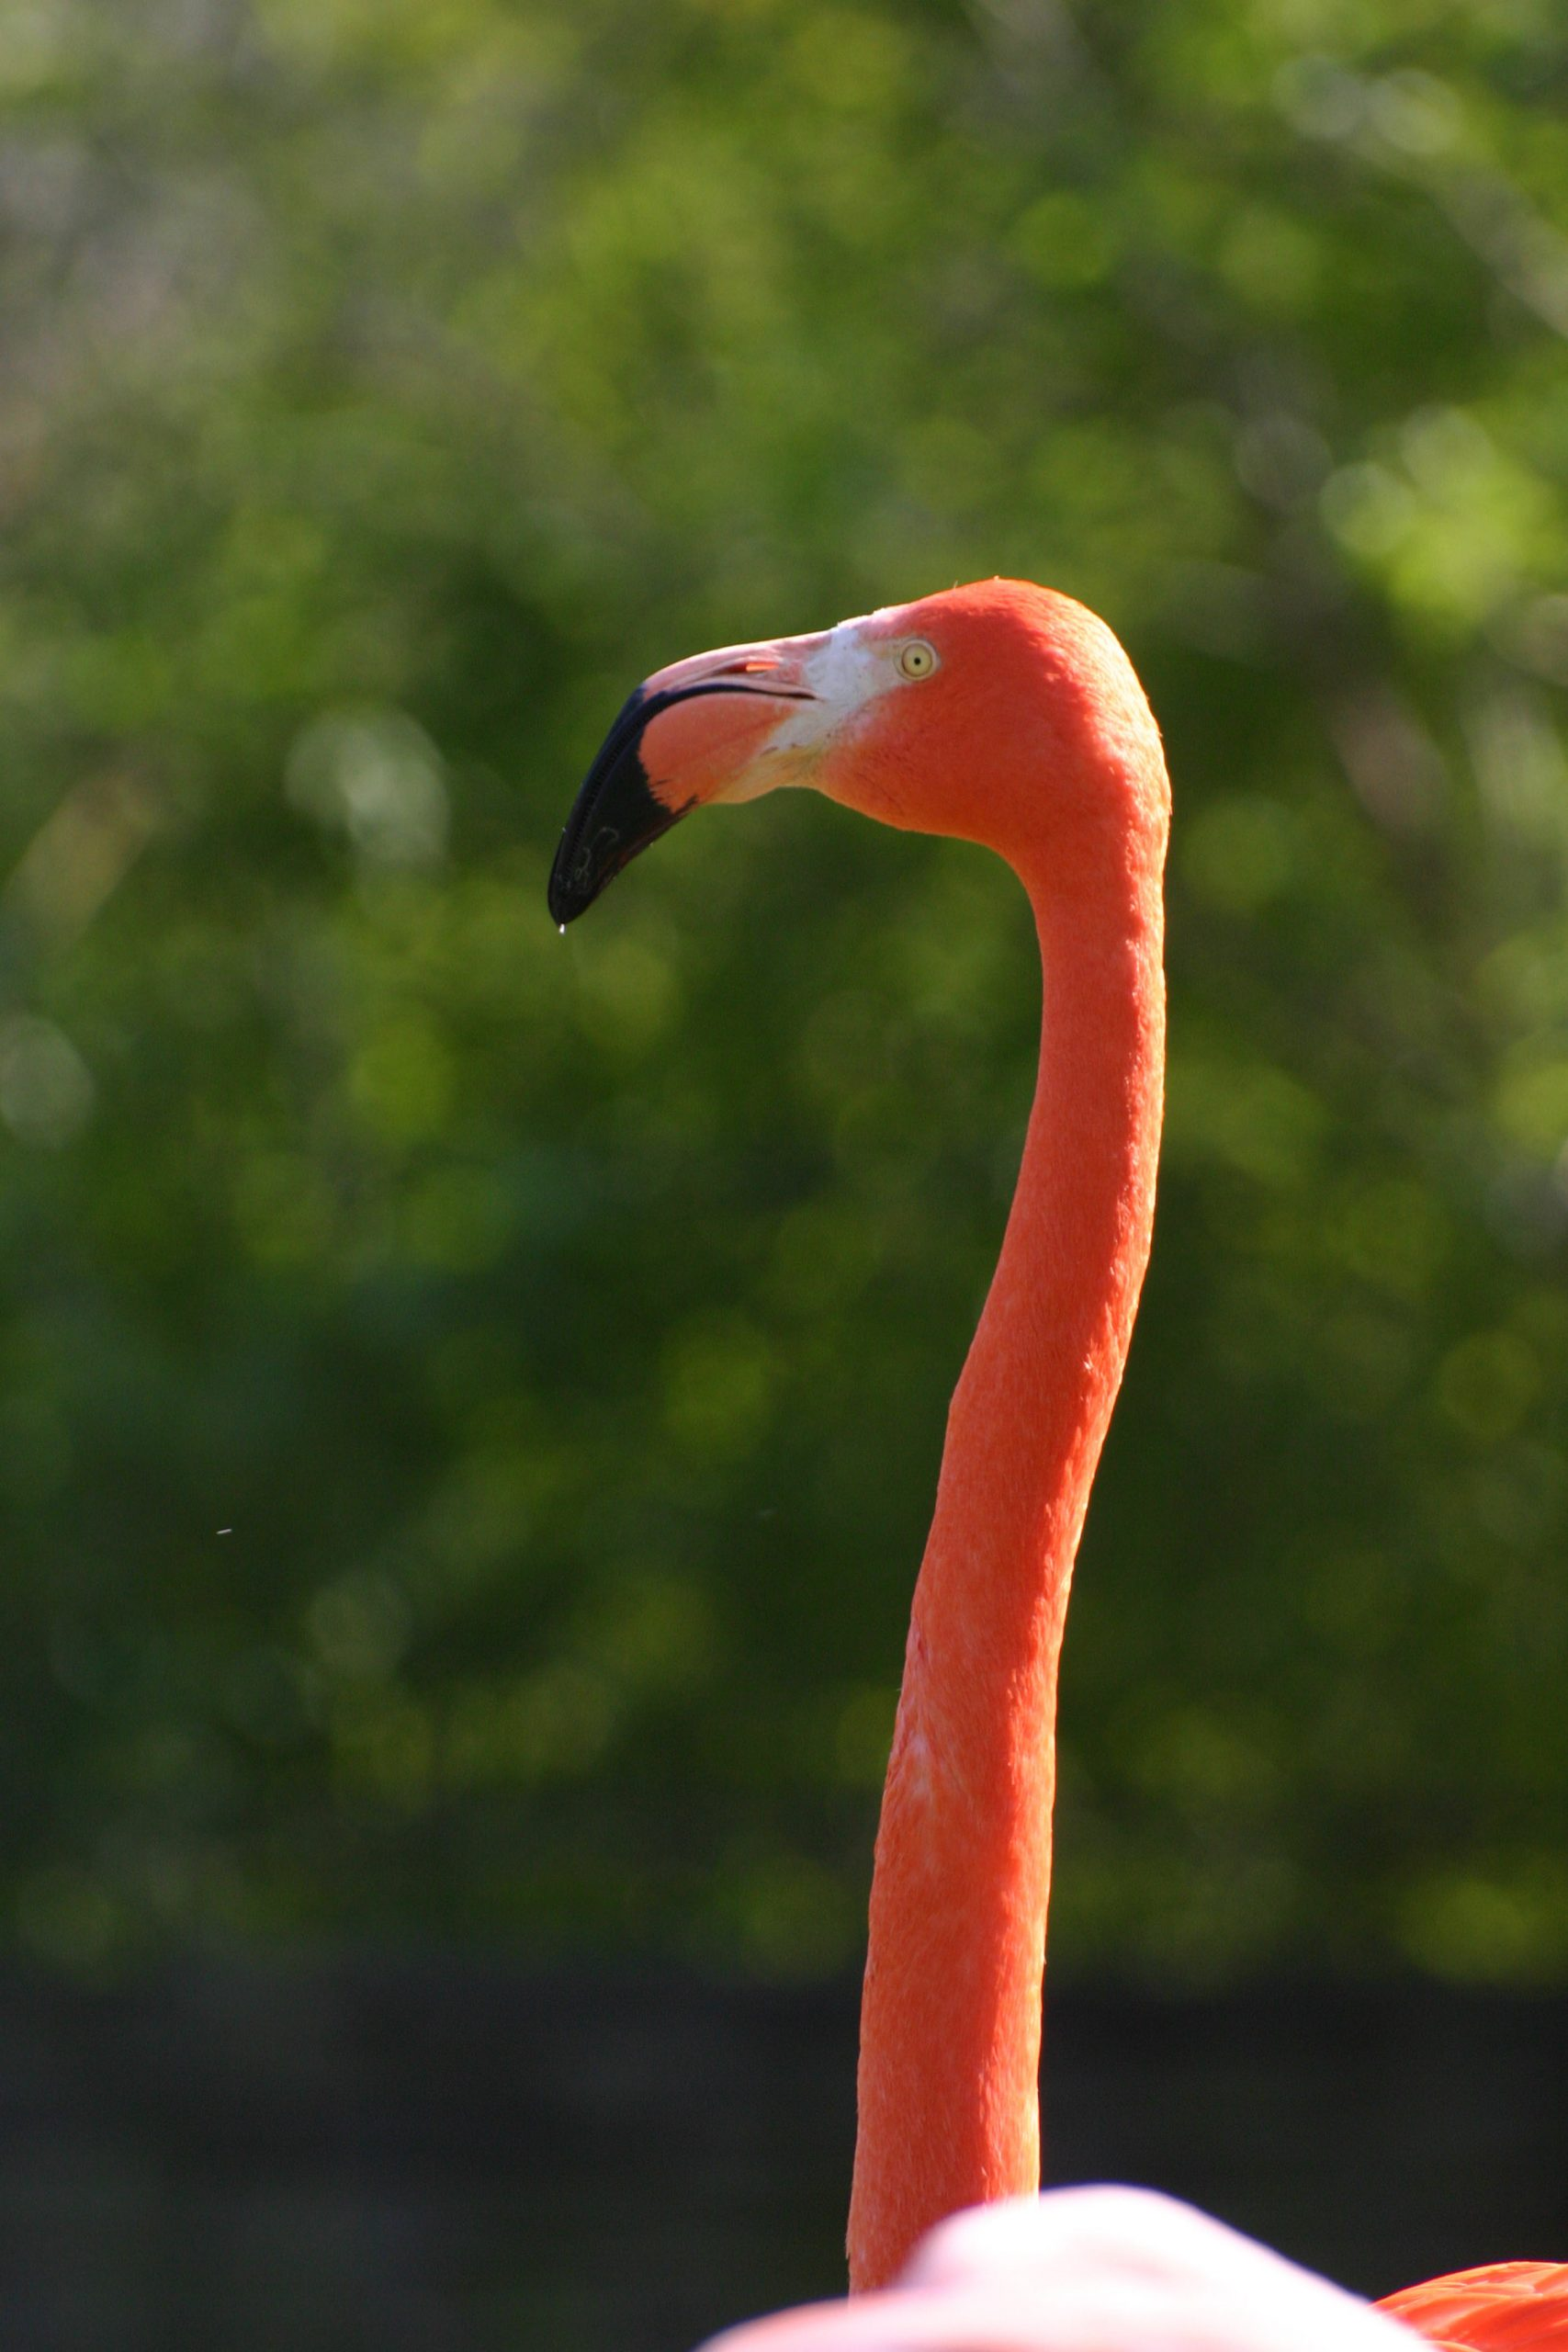 Flamingo On Freemages pour Flamant Rose Jardin